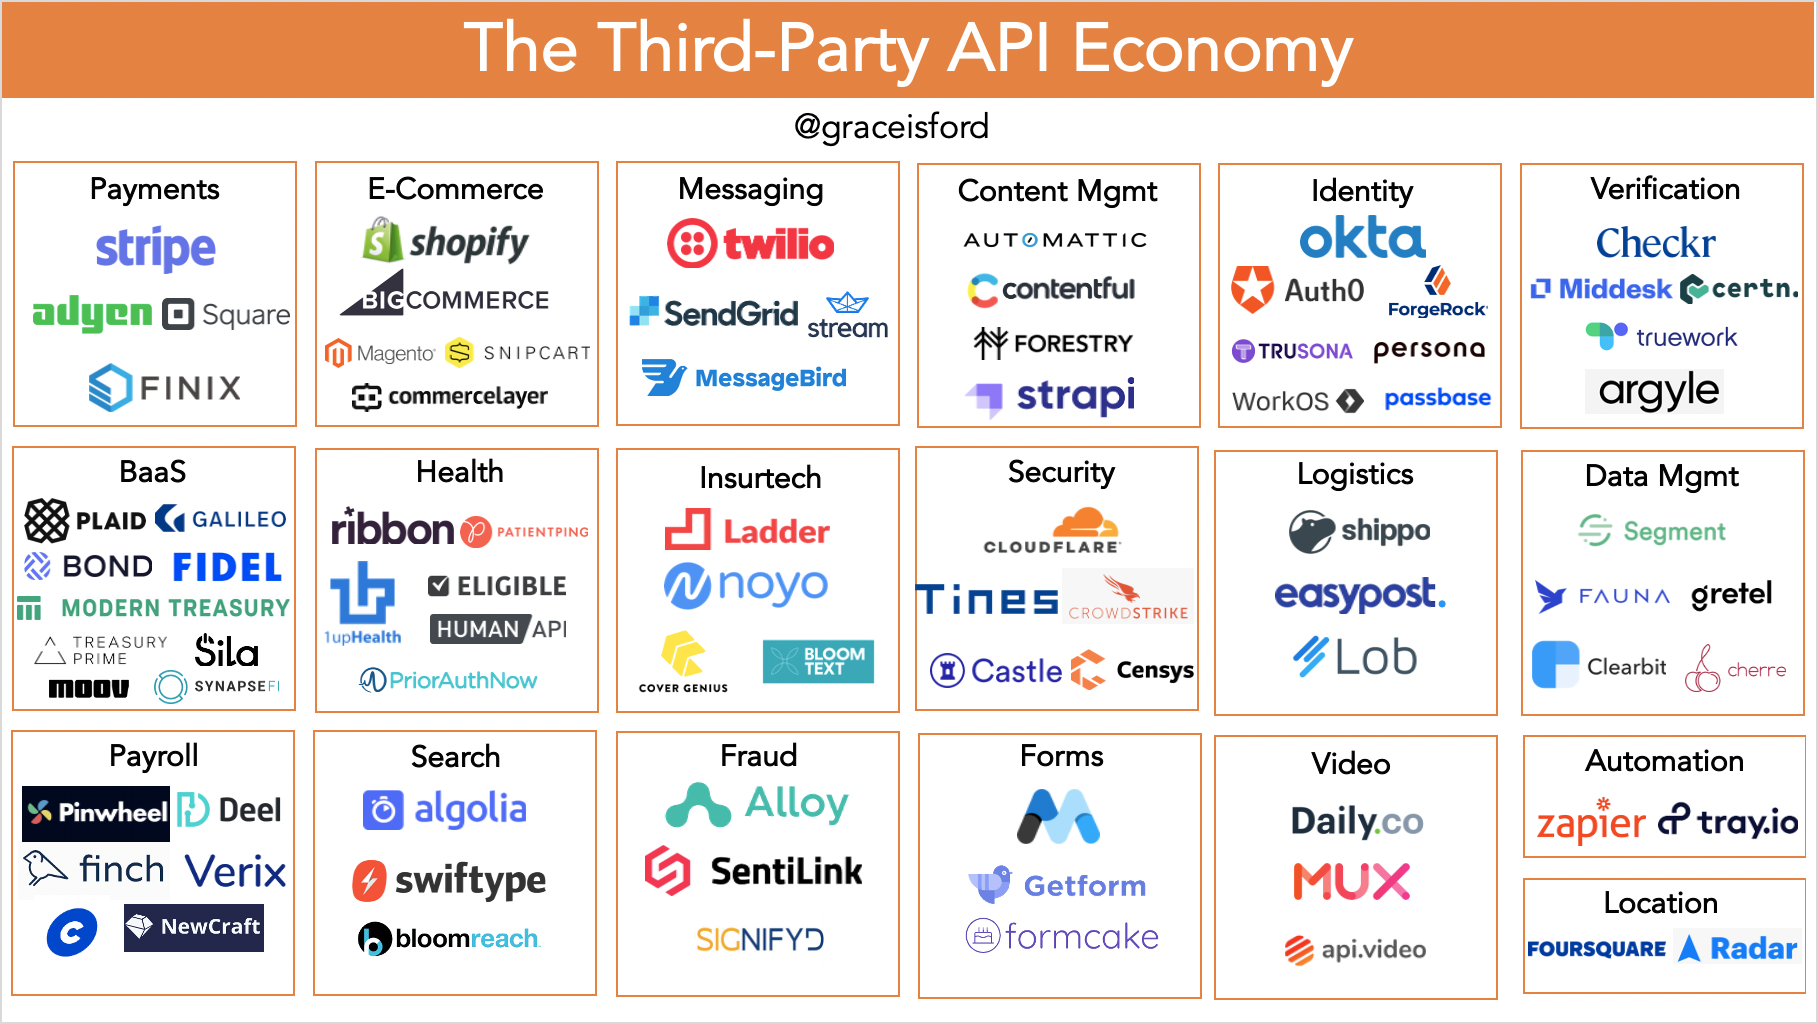 The Third-Party API Economy